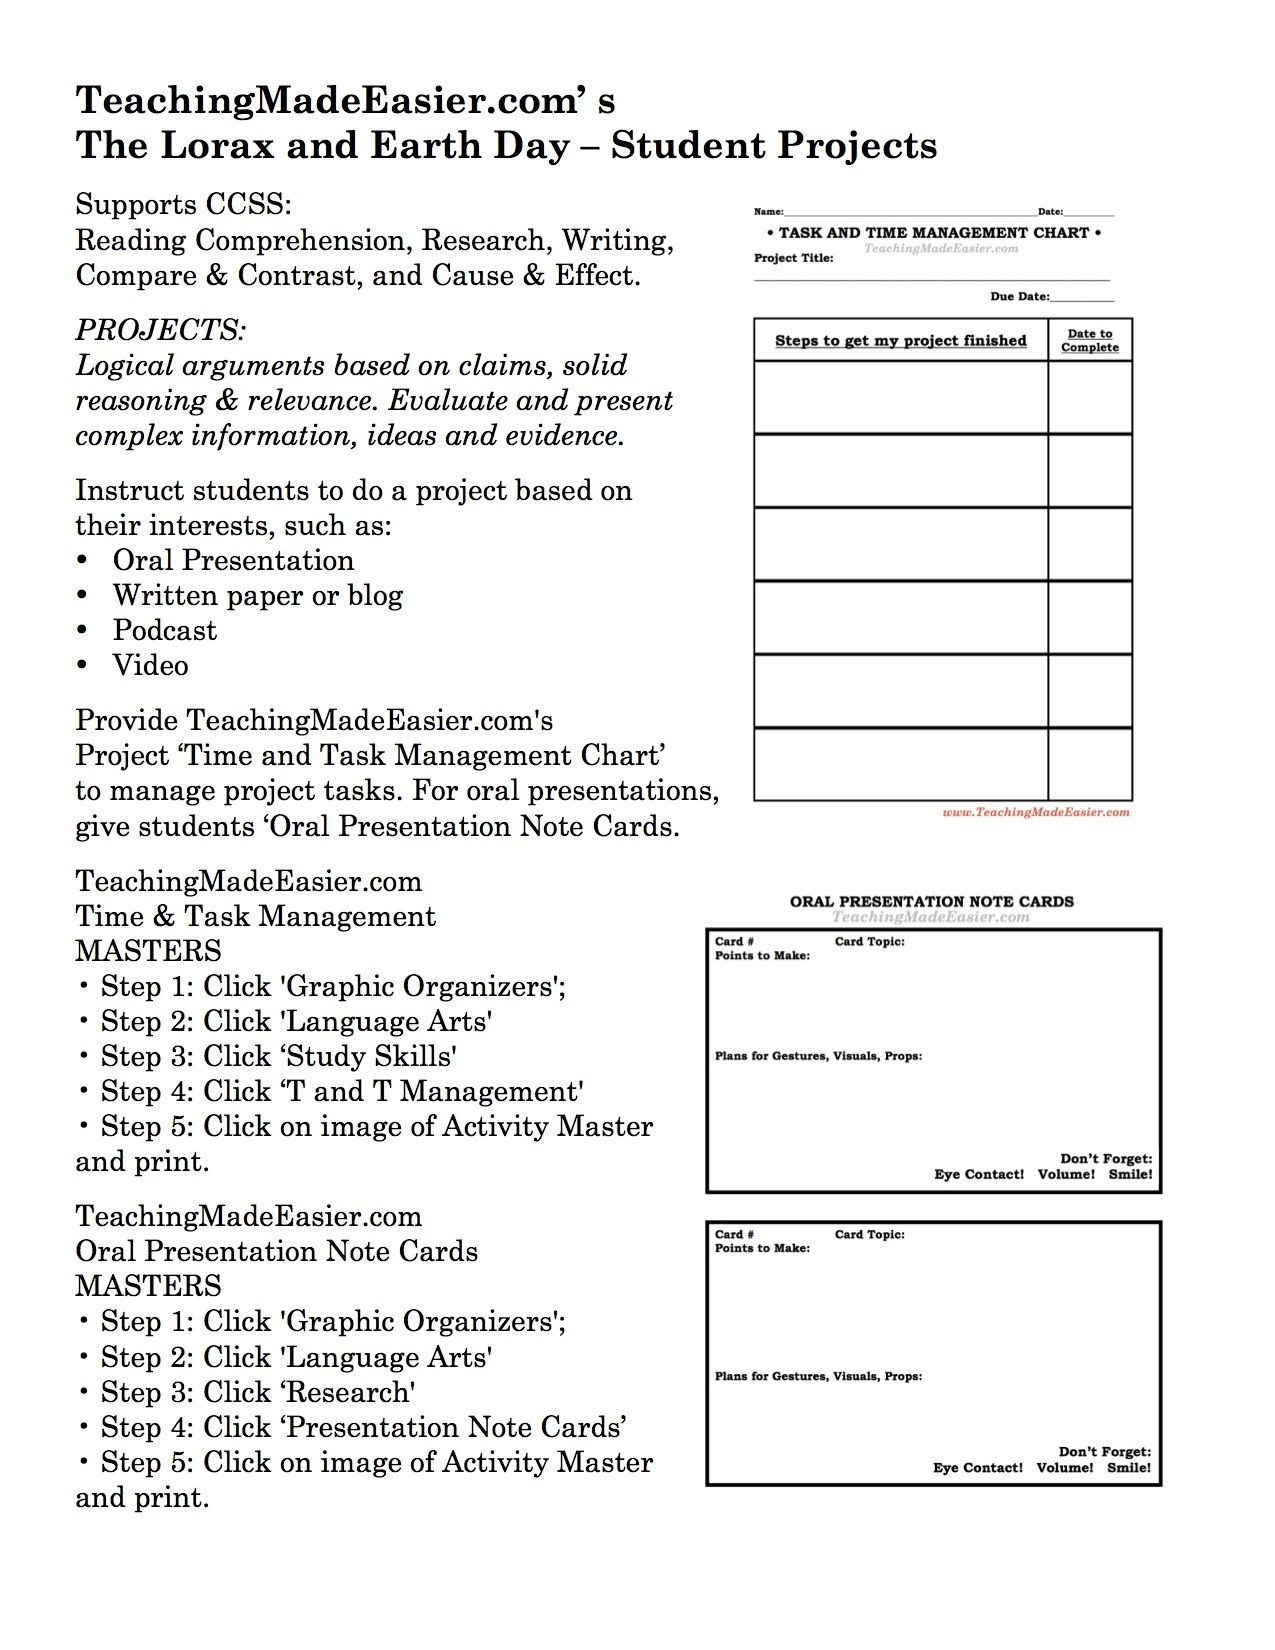 Worksheets The Lorax Worksheet Answers teachingmadeeasier com the lorax earth day activity tip seven student projects based on